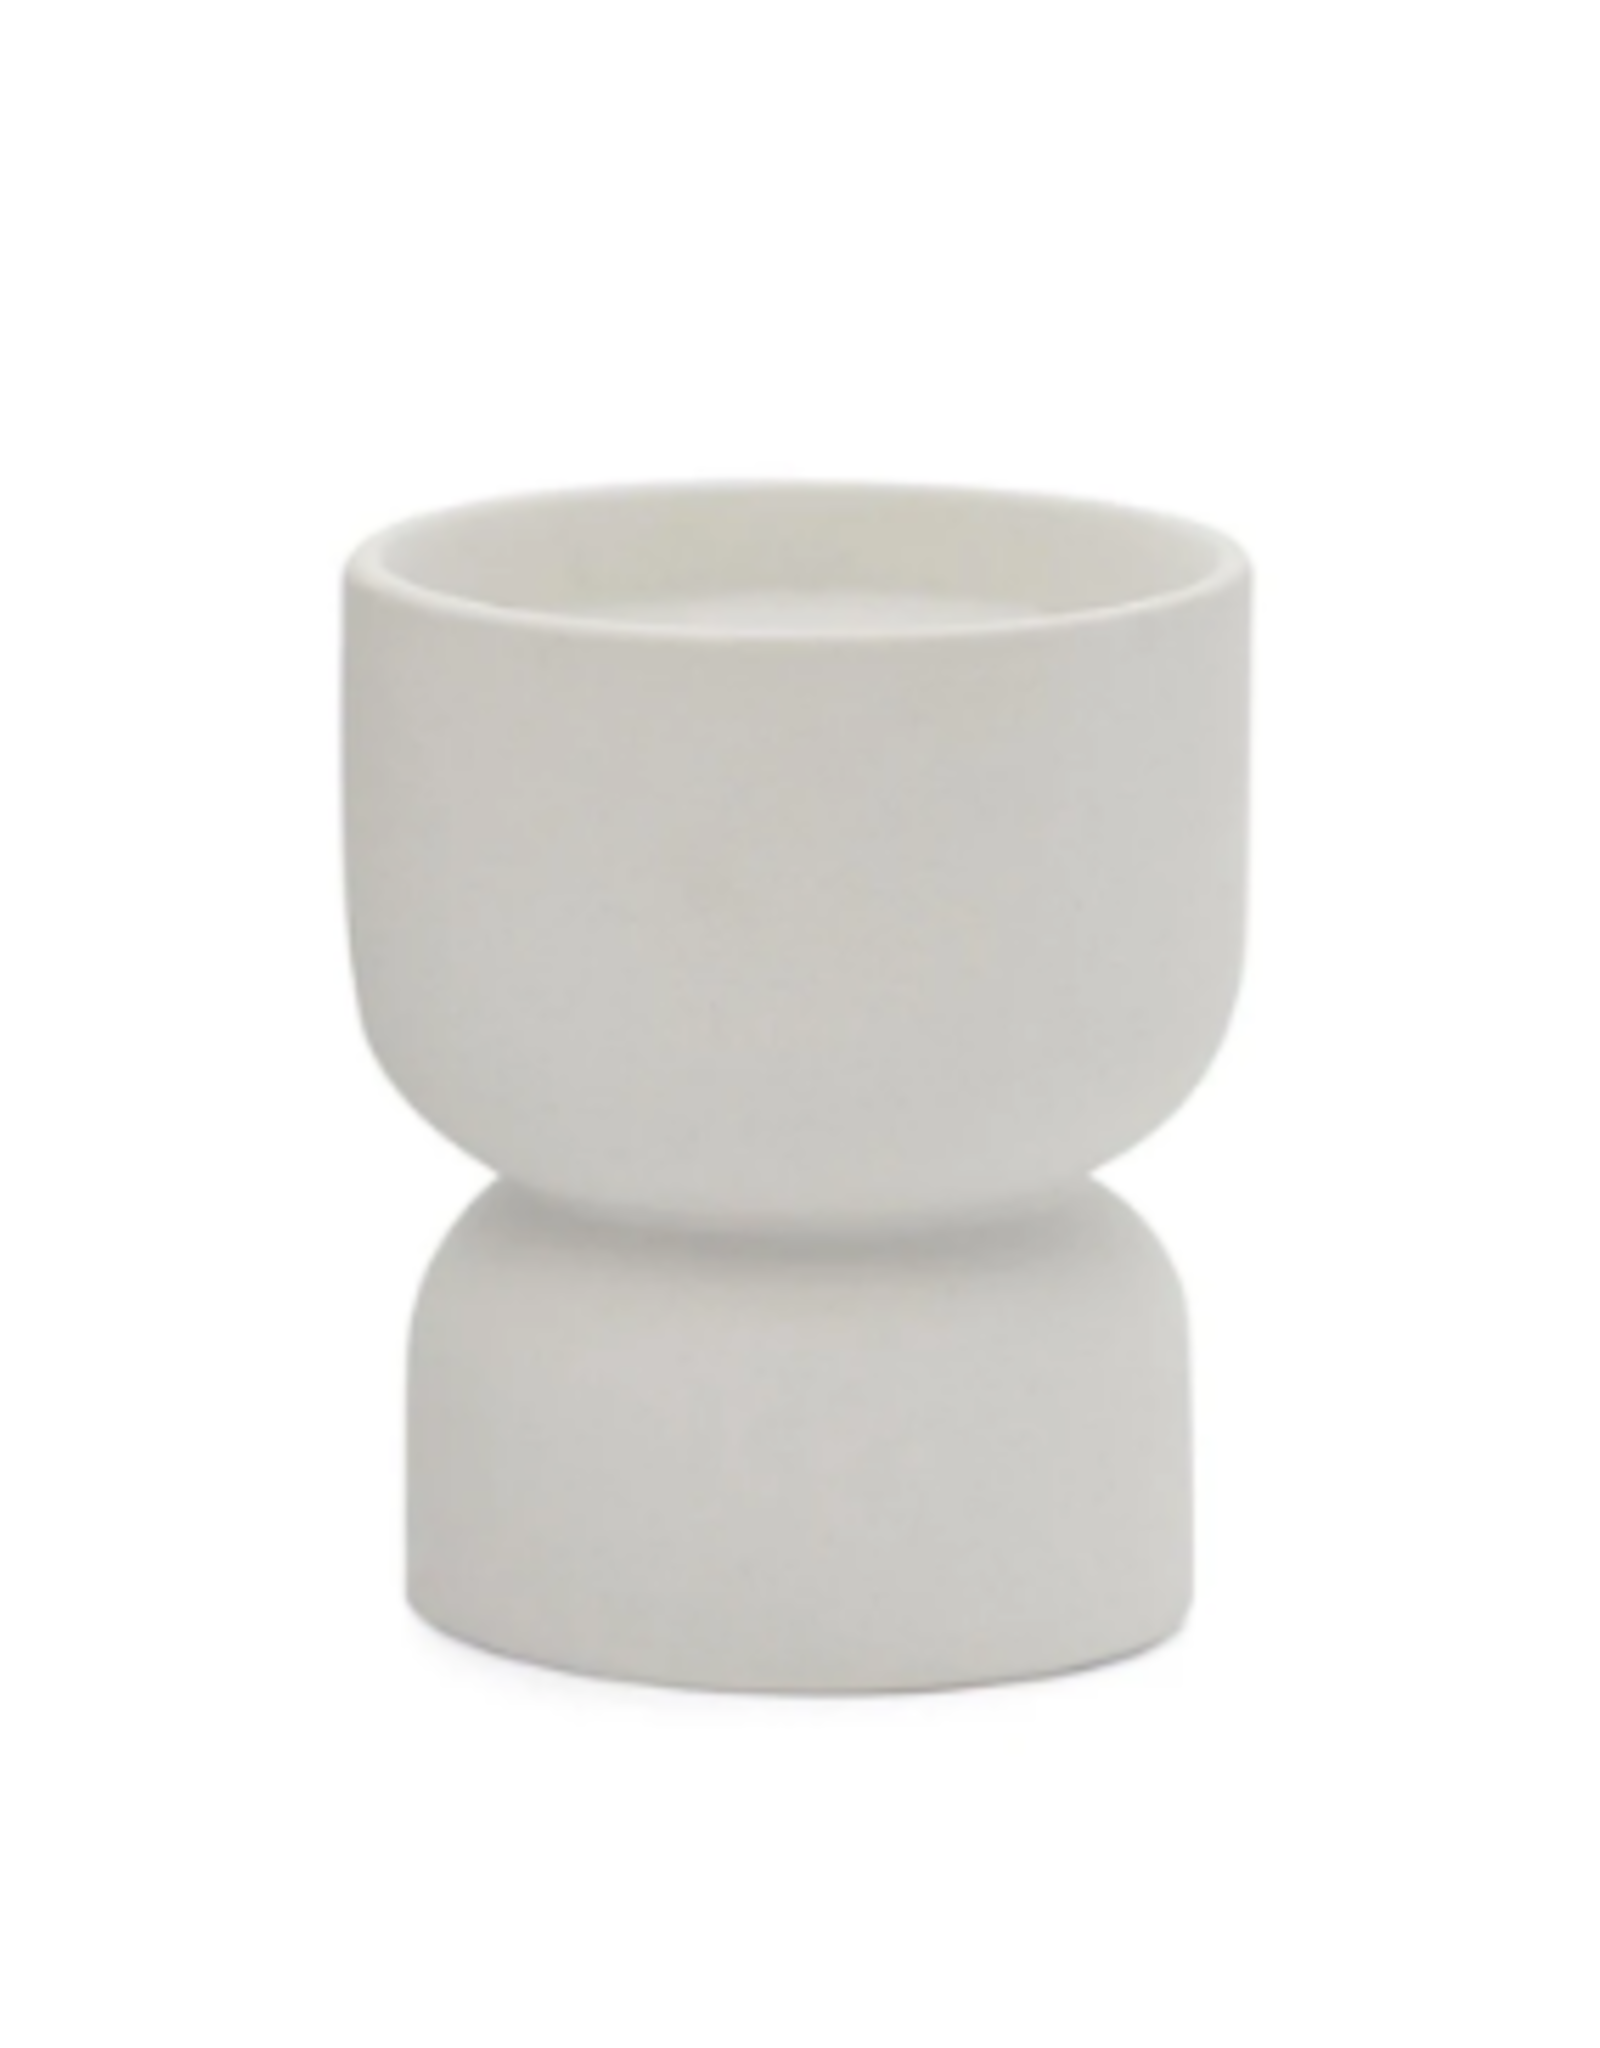 PAX - Ceramic Soy Candle/Tobacco Flower 6oz